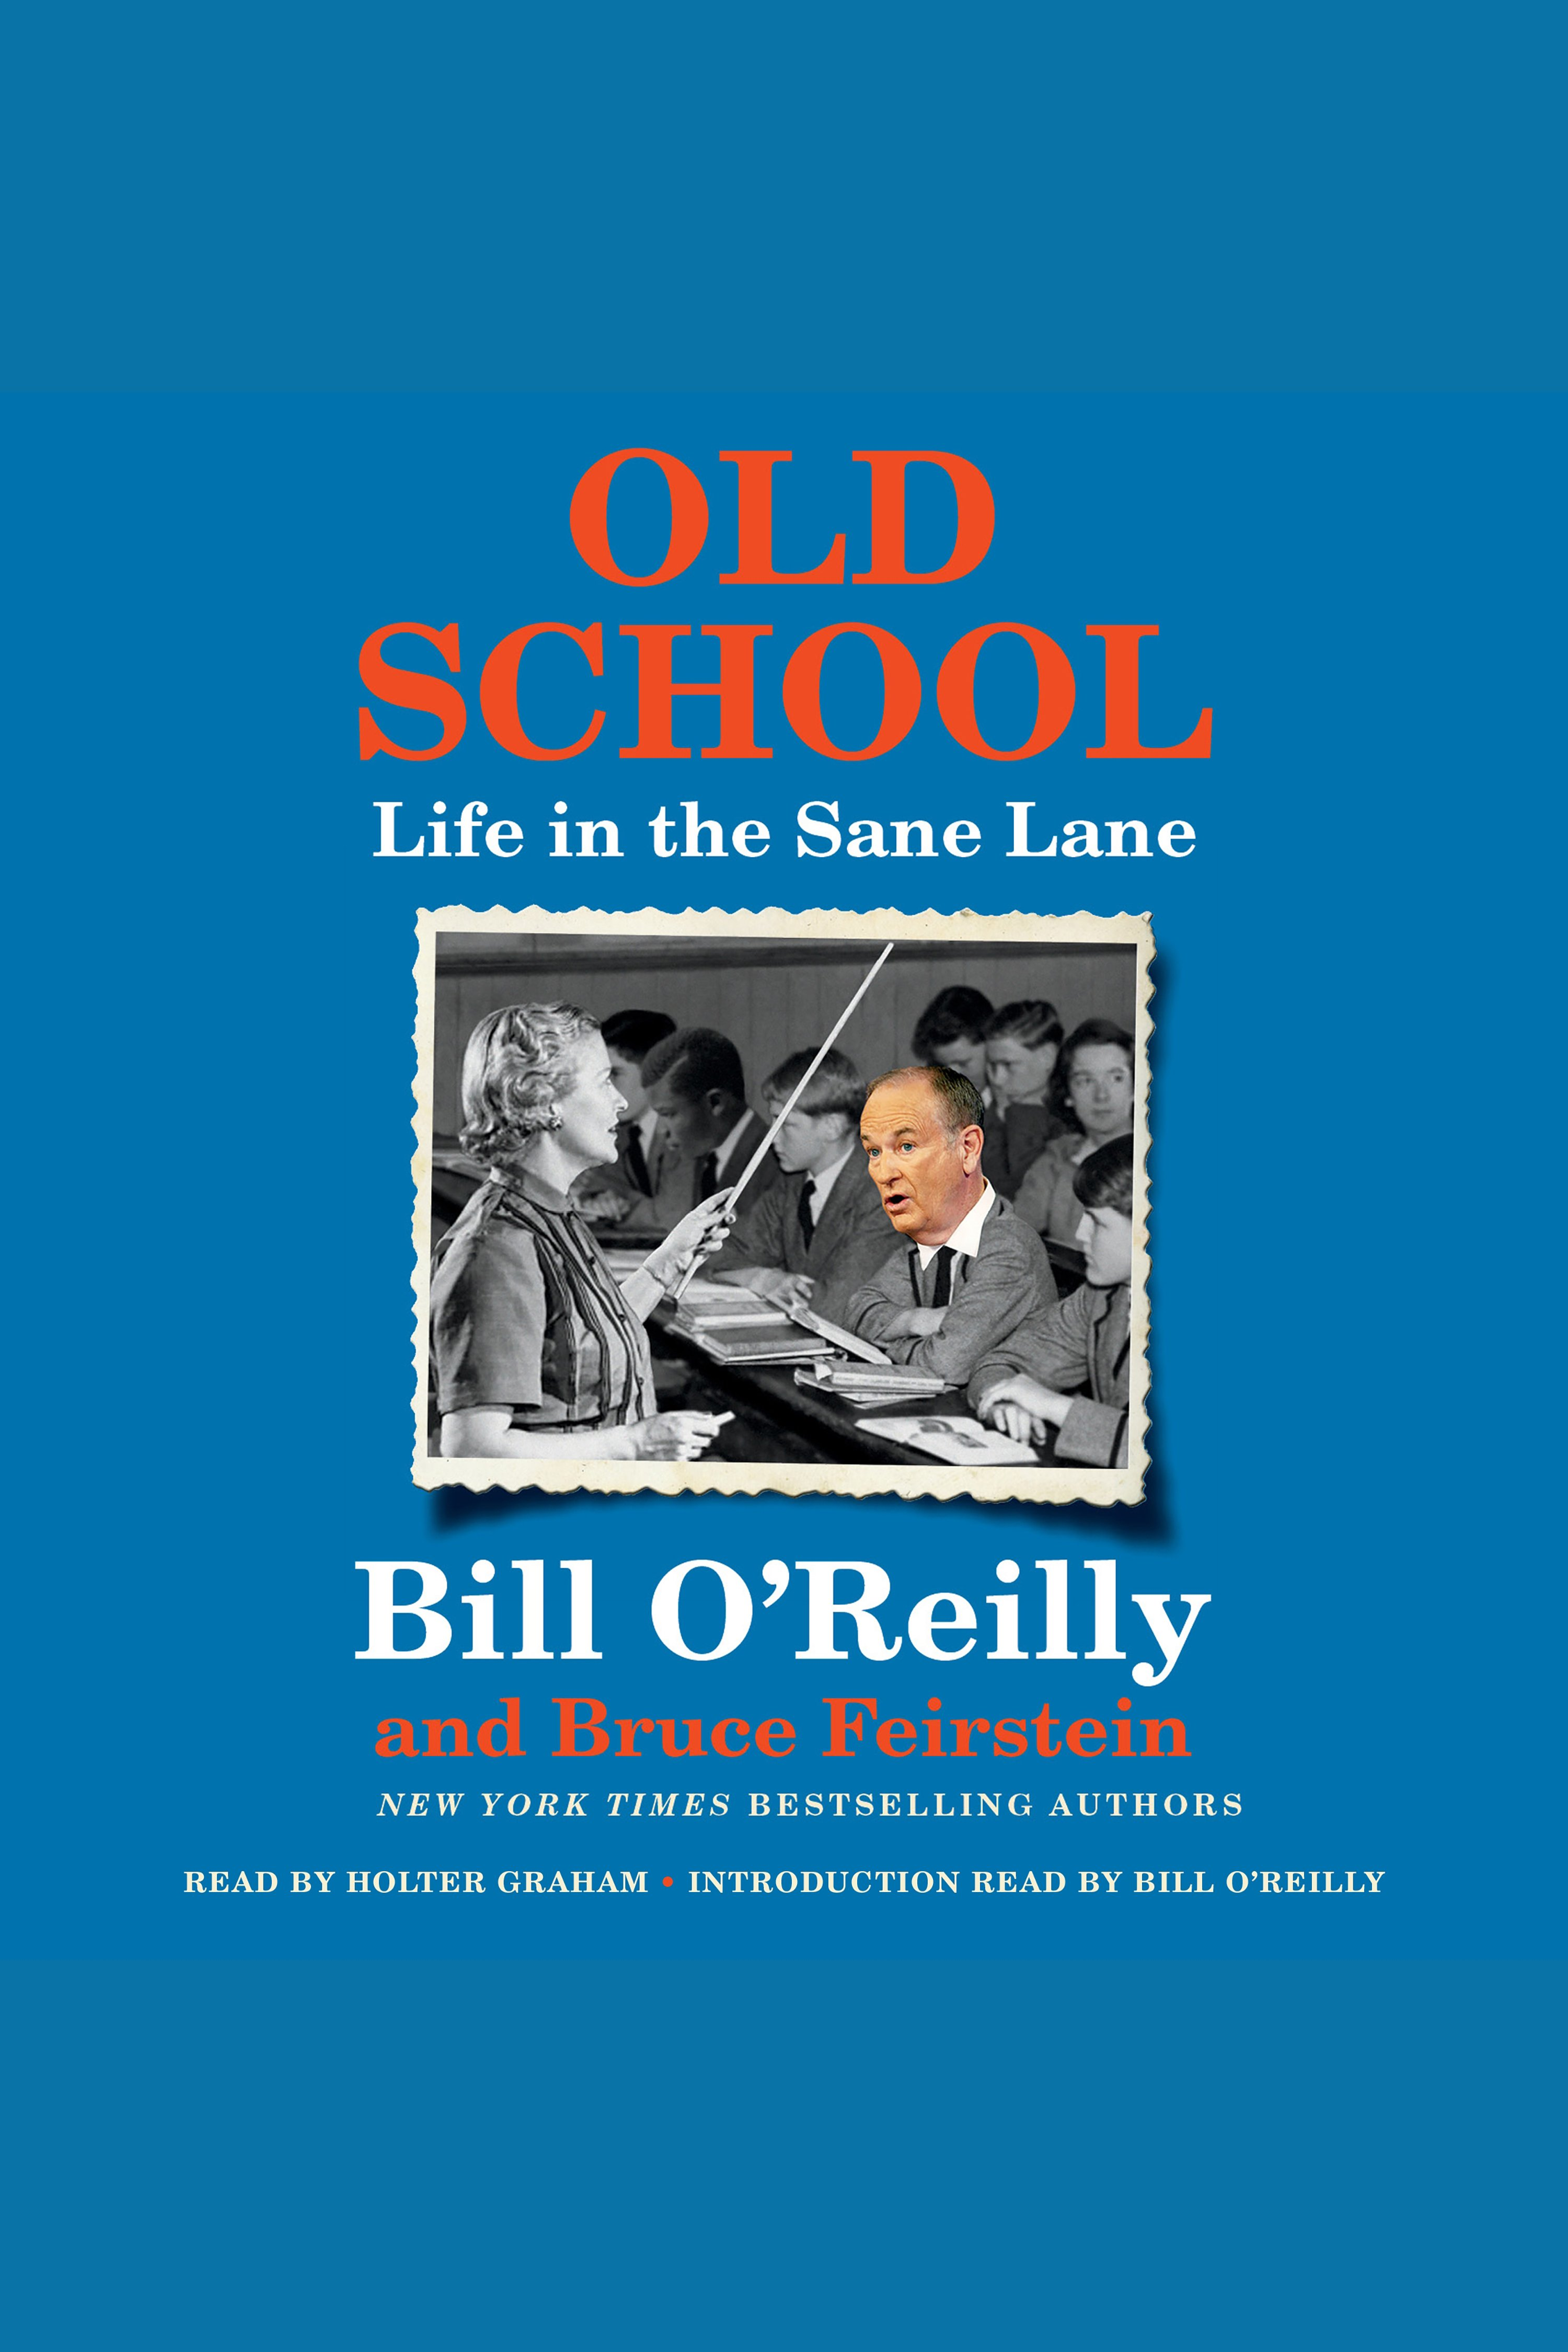 Old School [AUDIO EBOOK] Life in the Sane Lane